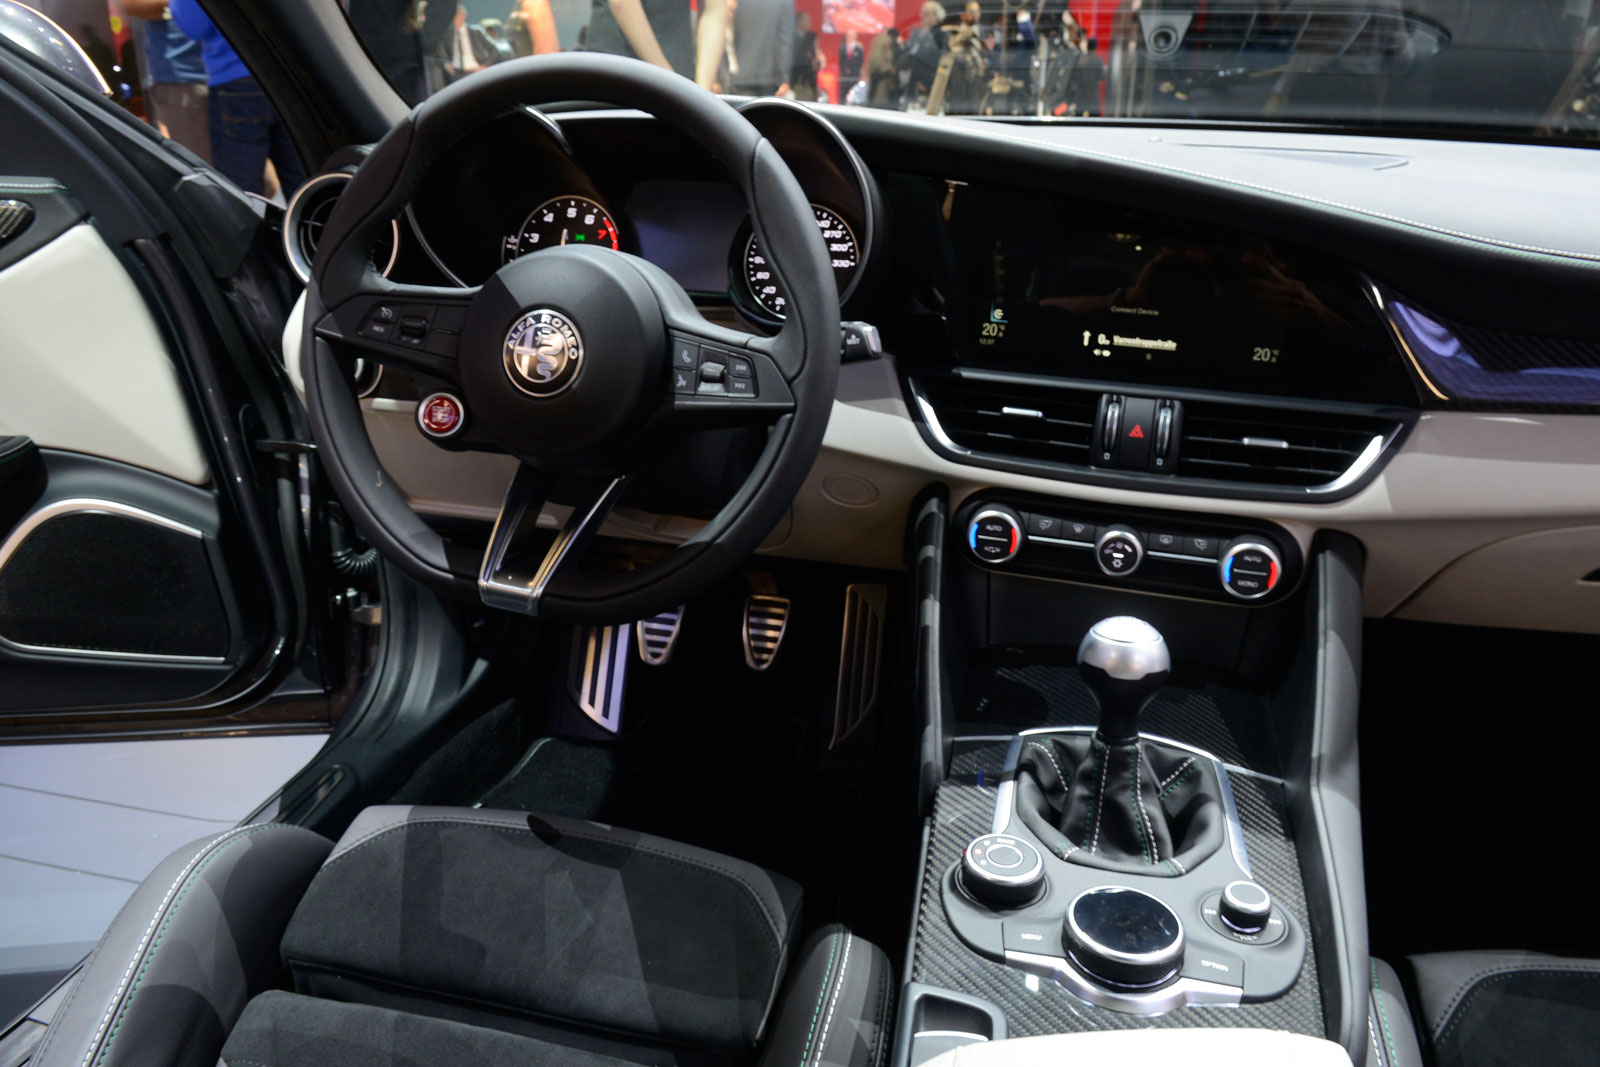 Captivating Alfa Romeo Giulia Interior